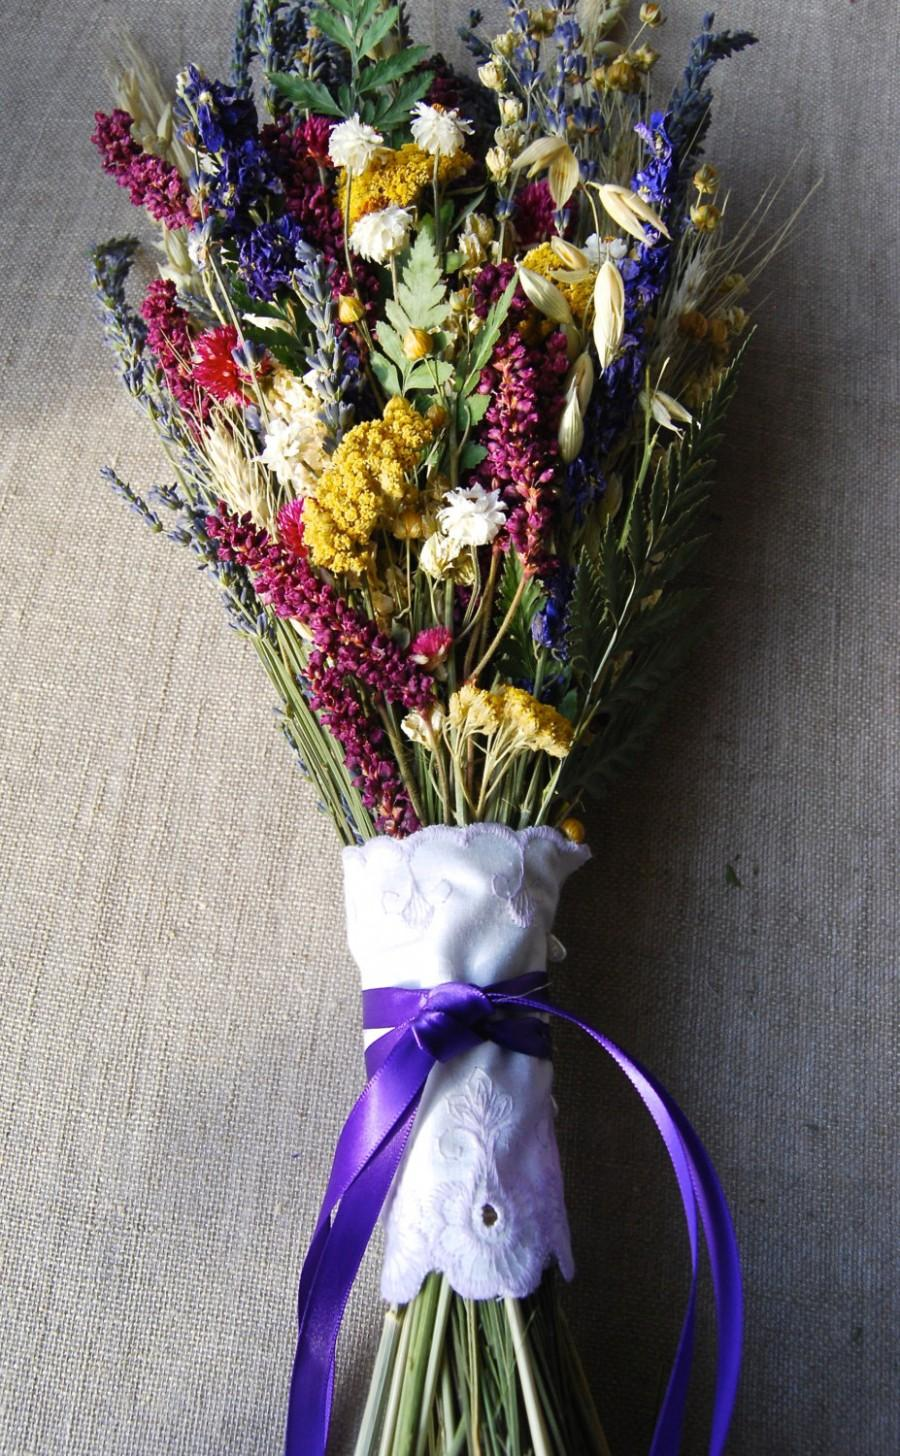 Hochzeit - Kiss Me Quick Wedding  Brides Bouquet of Lavender Larkspur Wheat and other dried flowers